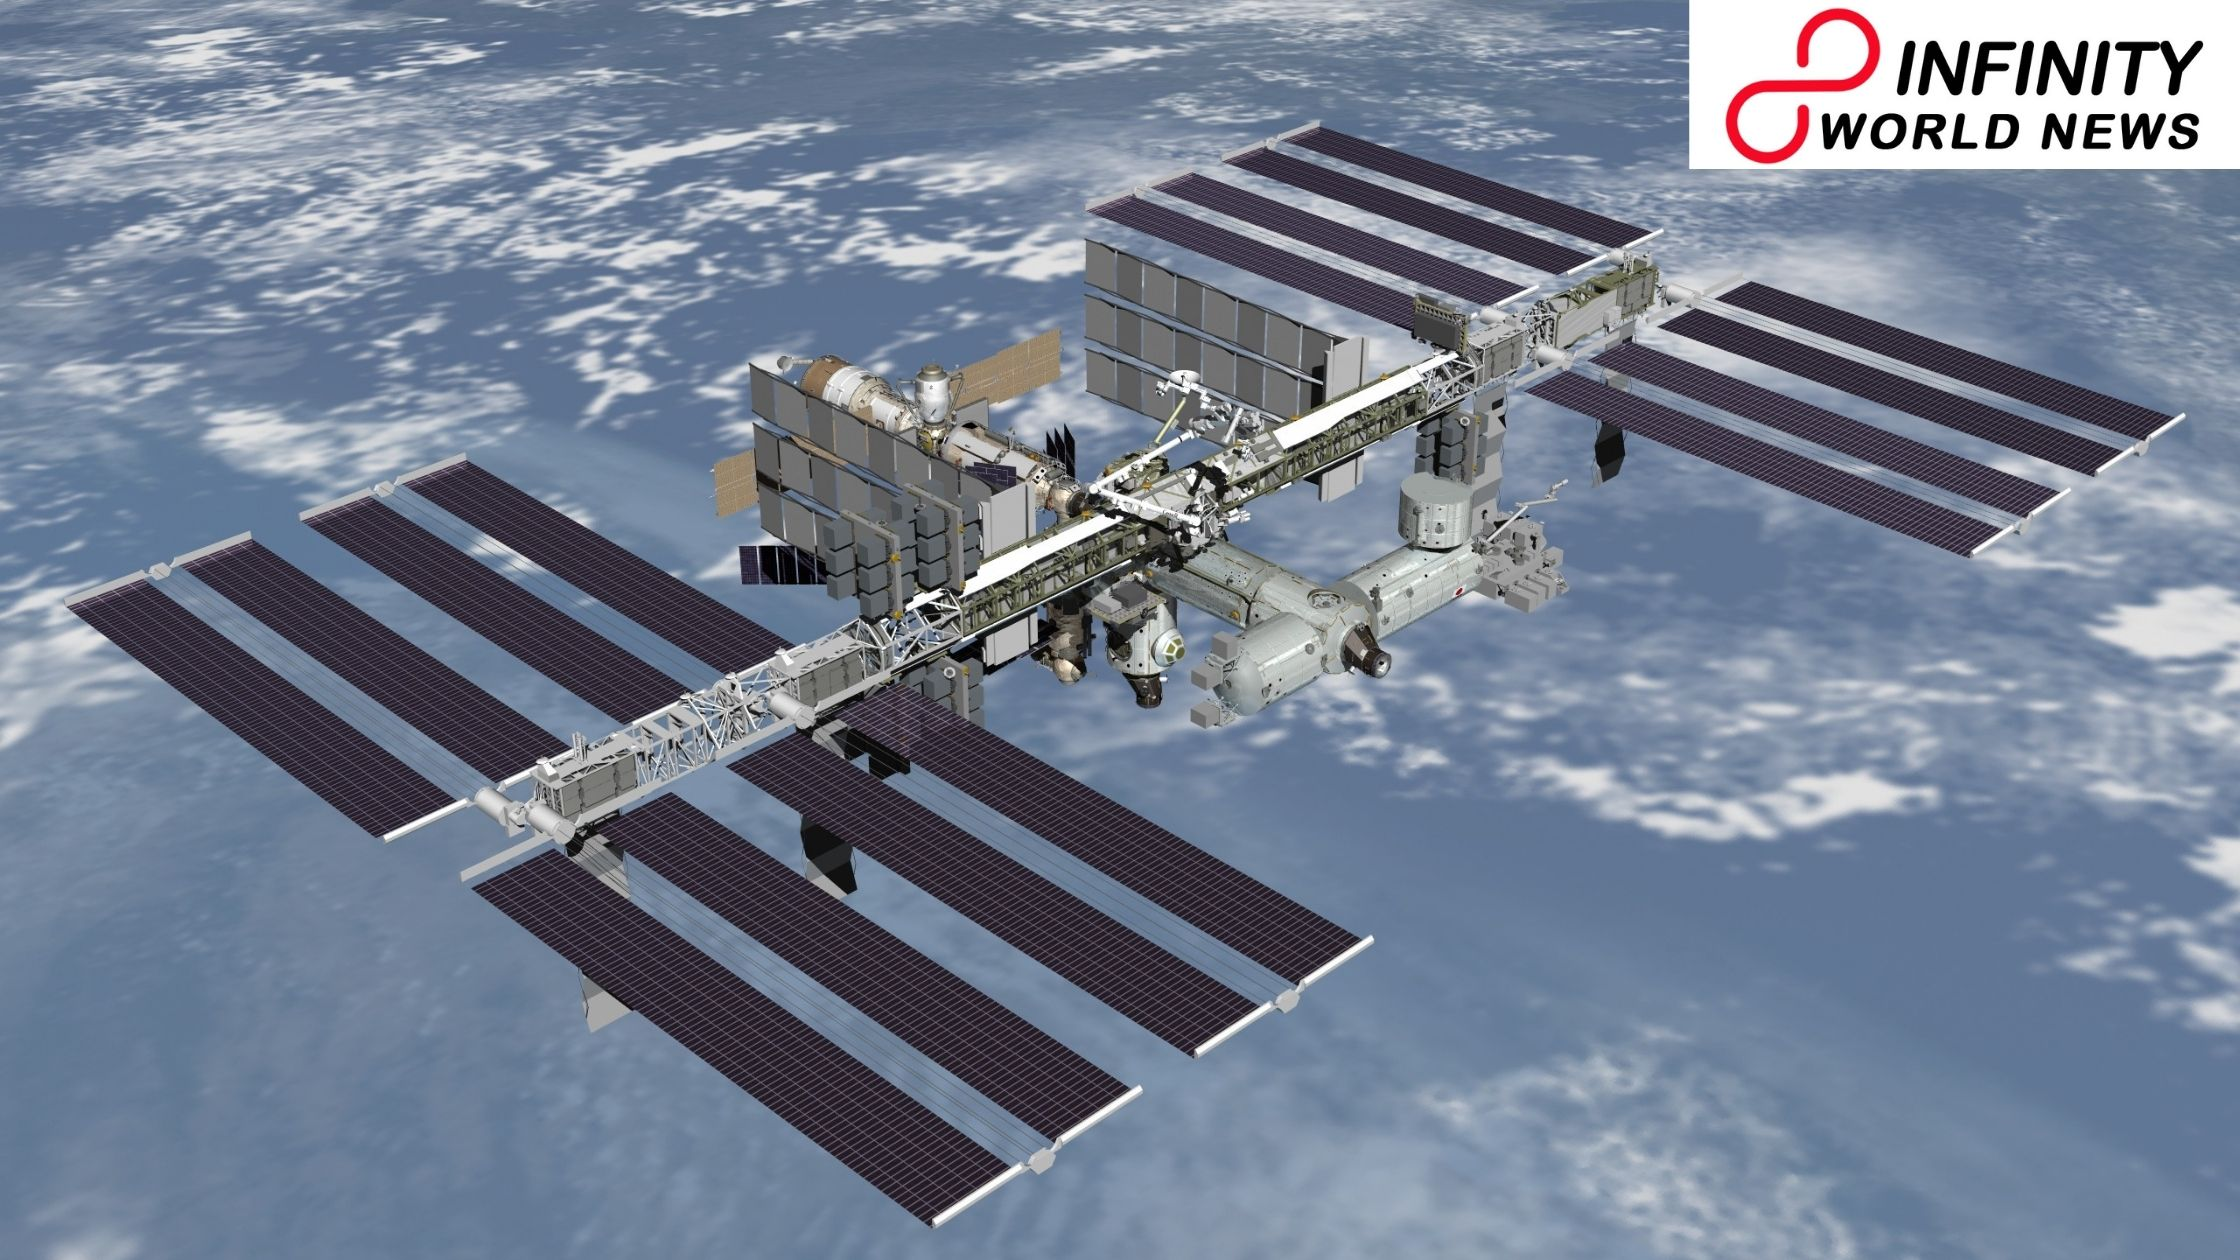 Space station checking 20 years of individuals living in the circle